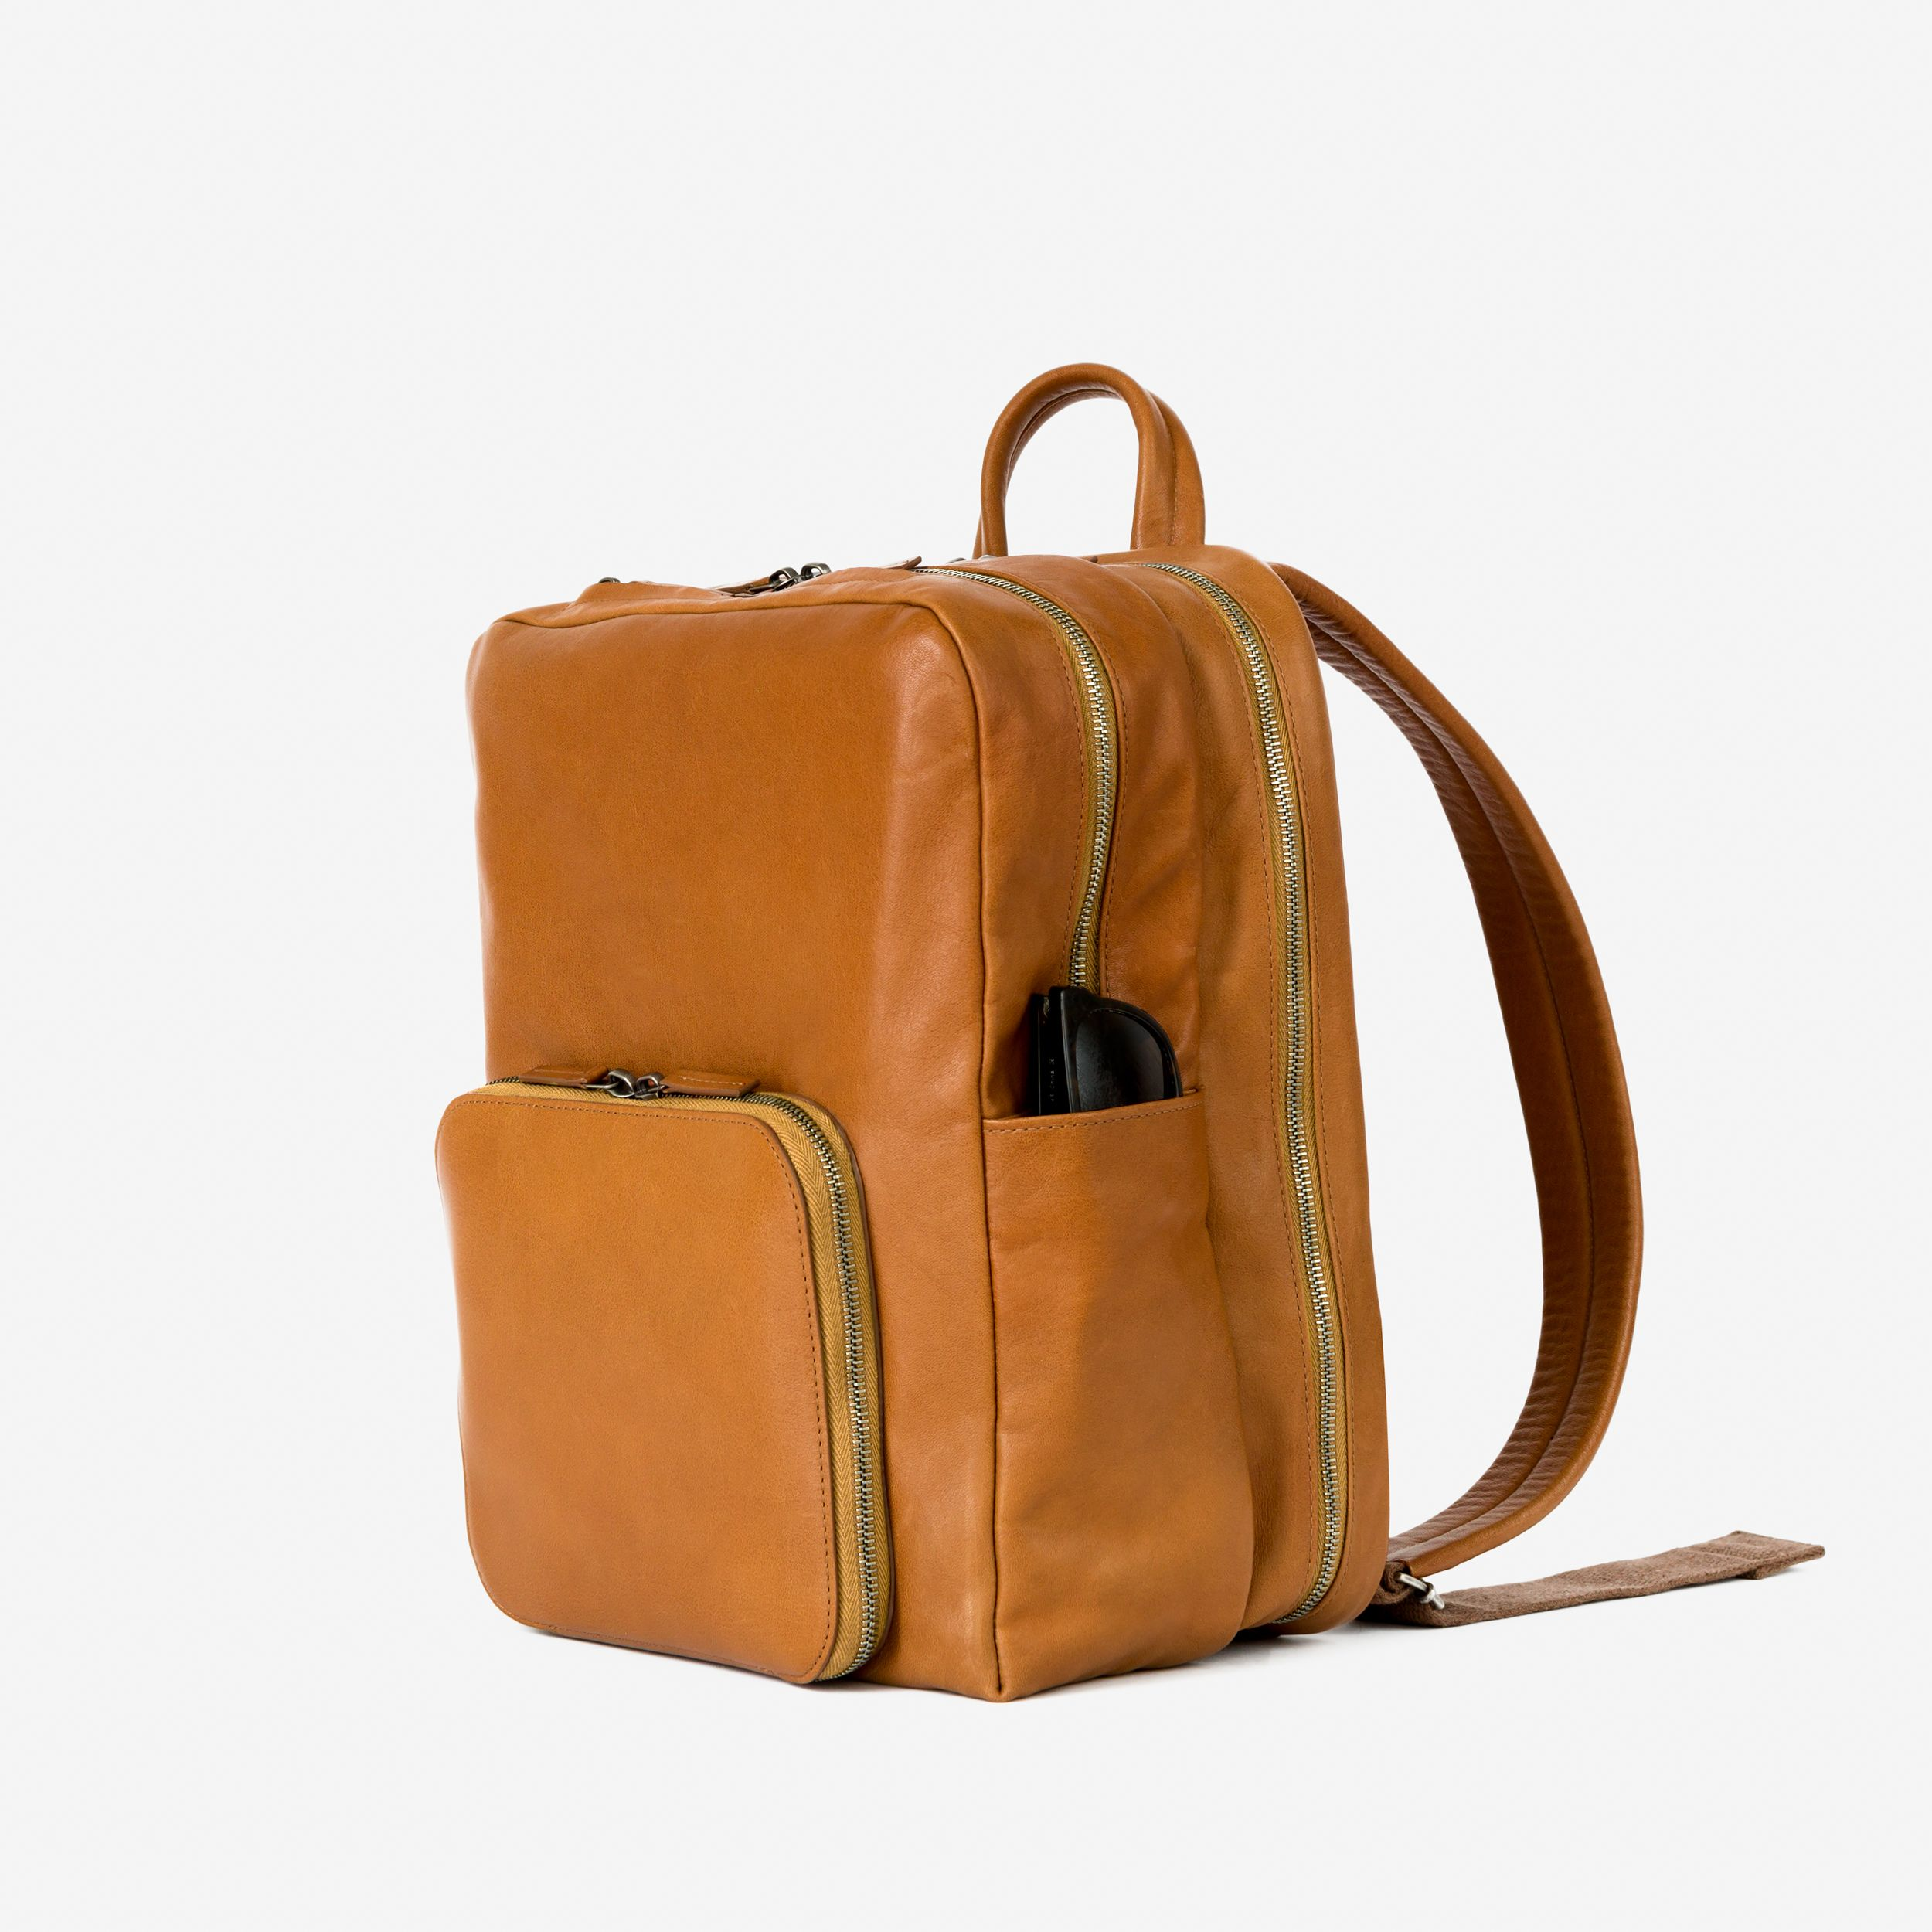 93988f4a2bb0 leather backpack w 3 sections + wifi + location tracking